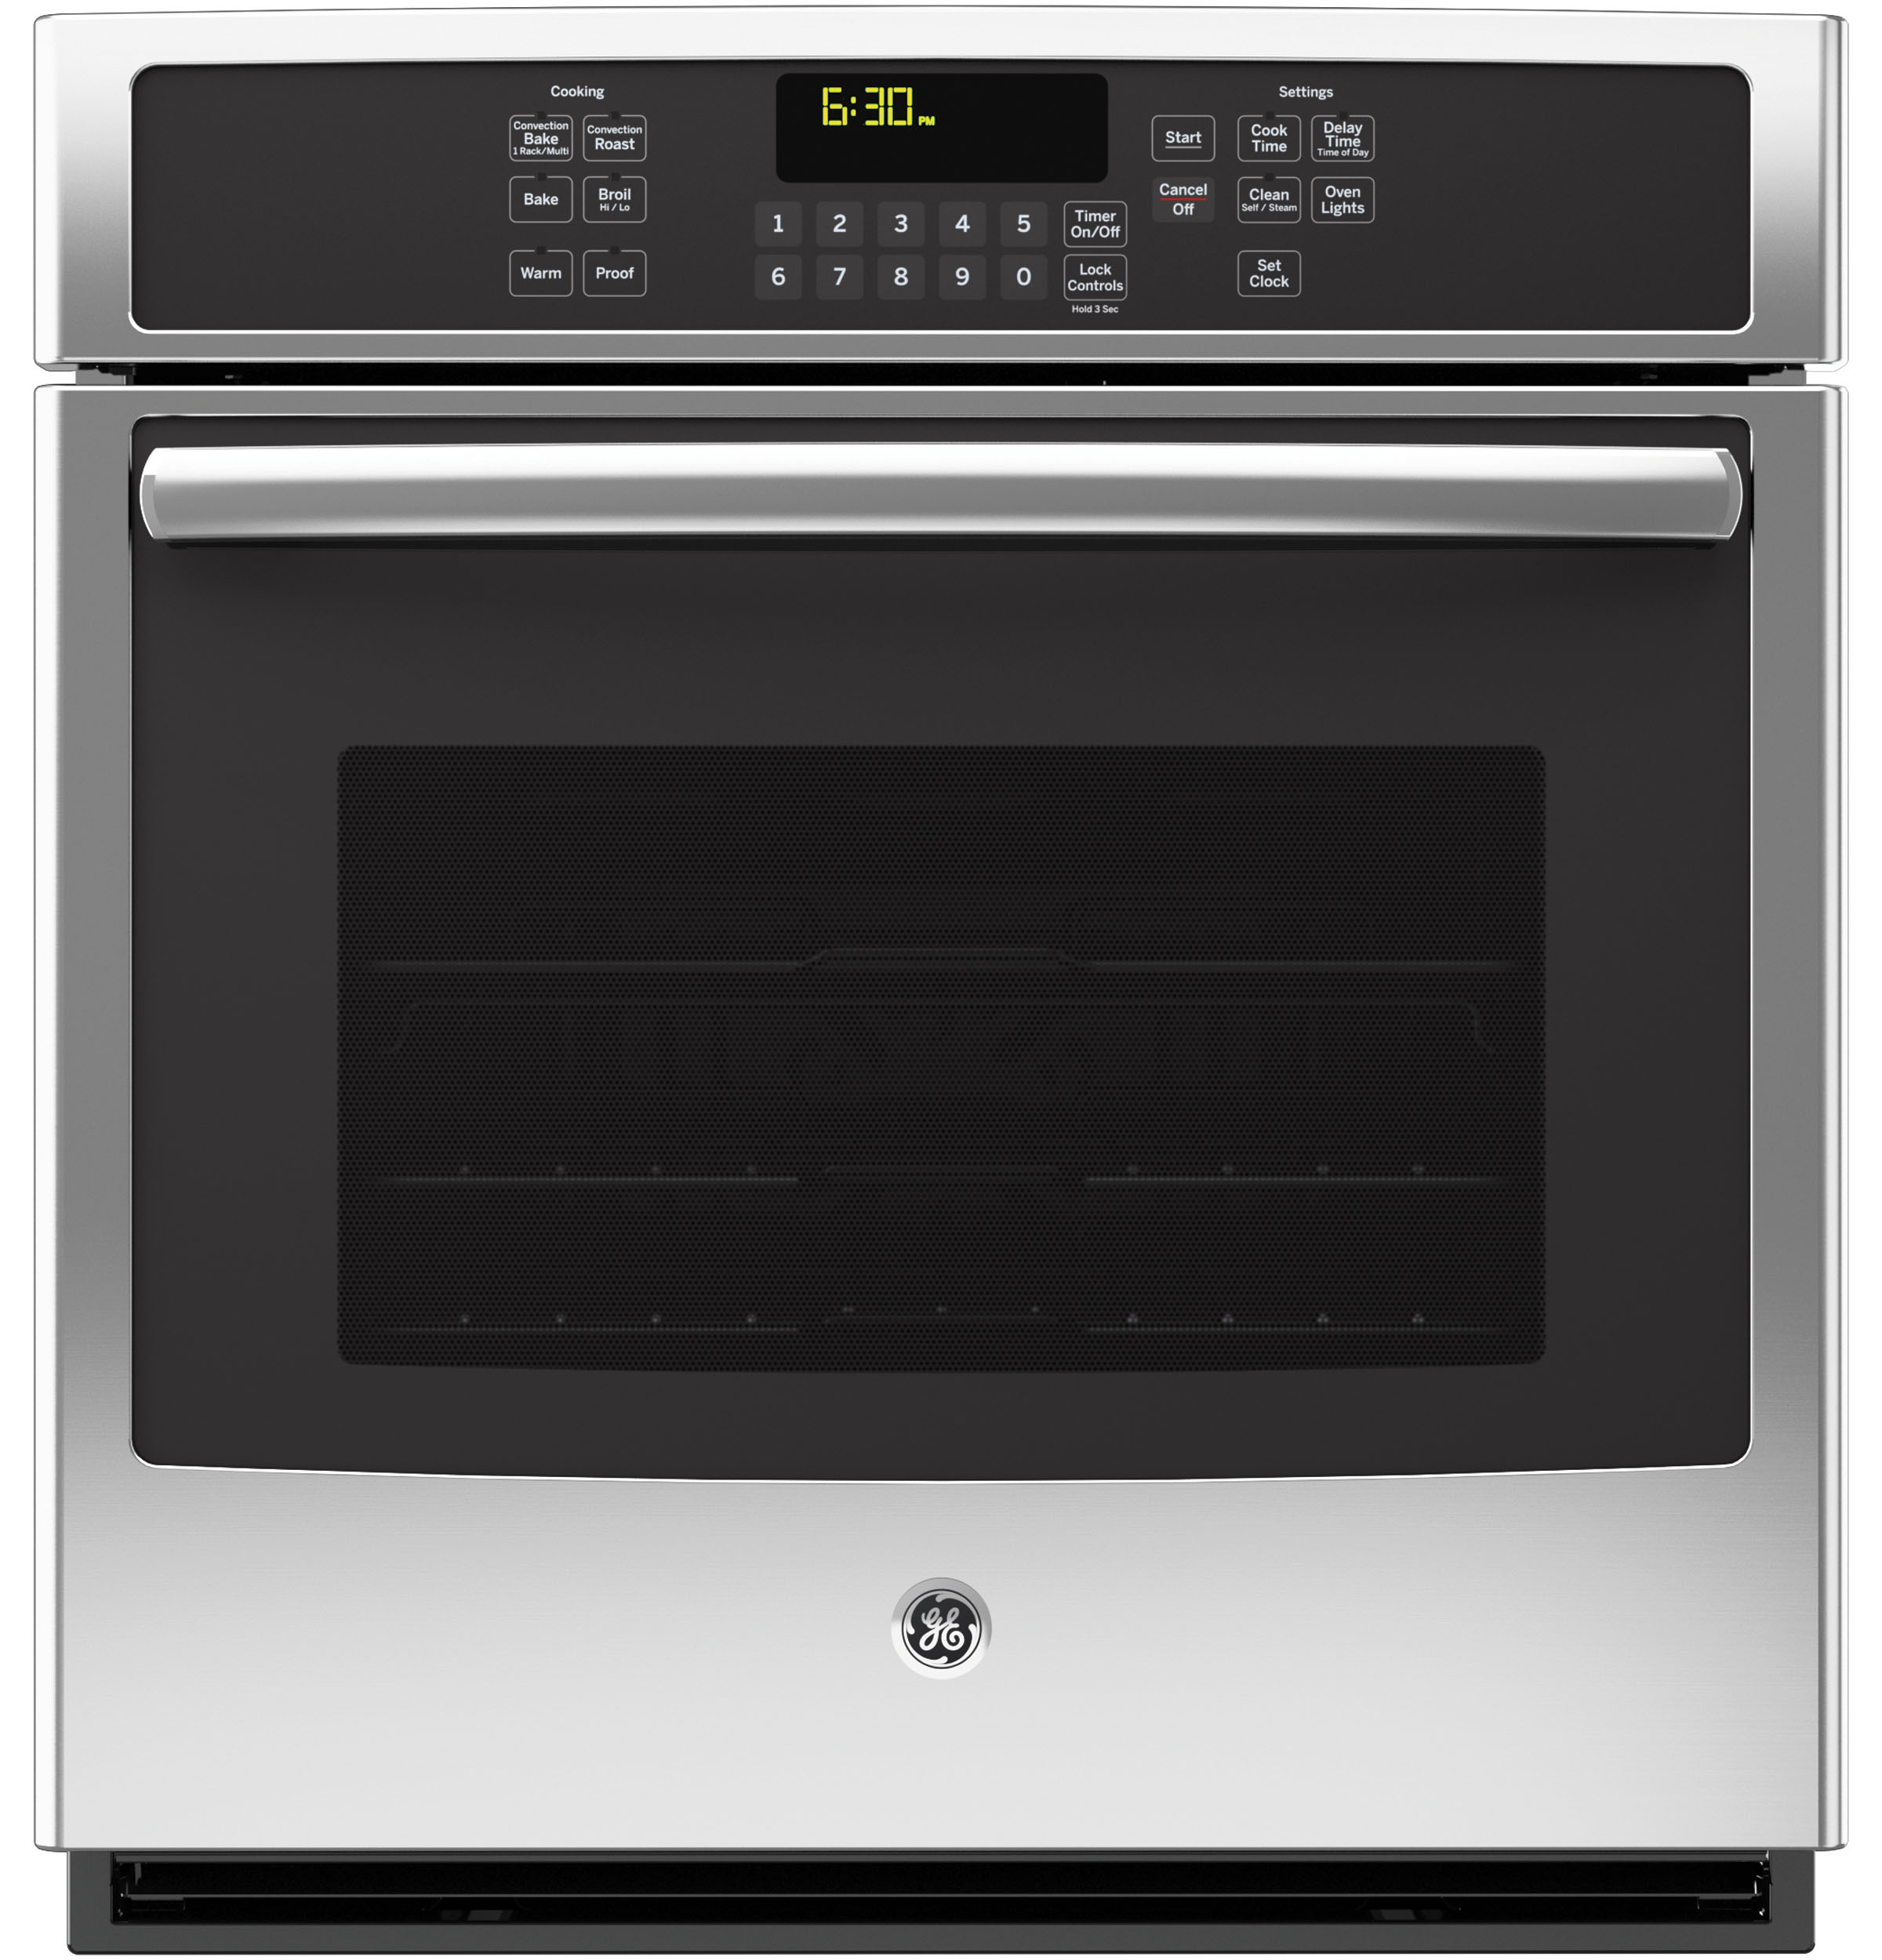 Ge 27 built in single convection wall oven jk5000sfss ge product image sciox Gallery